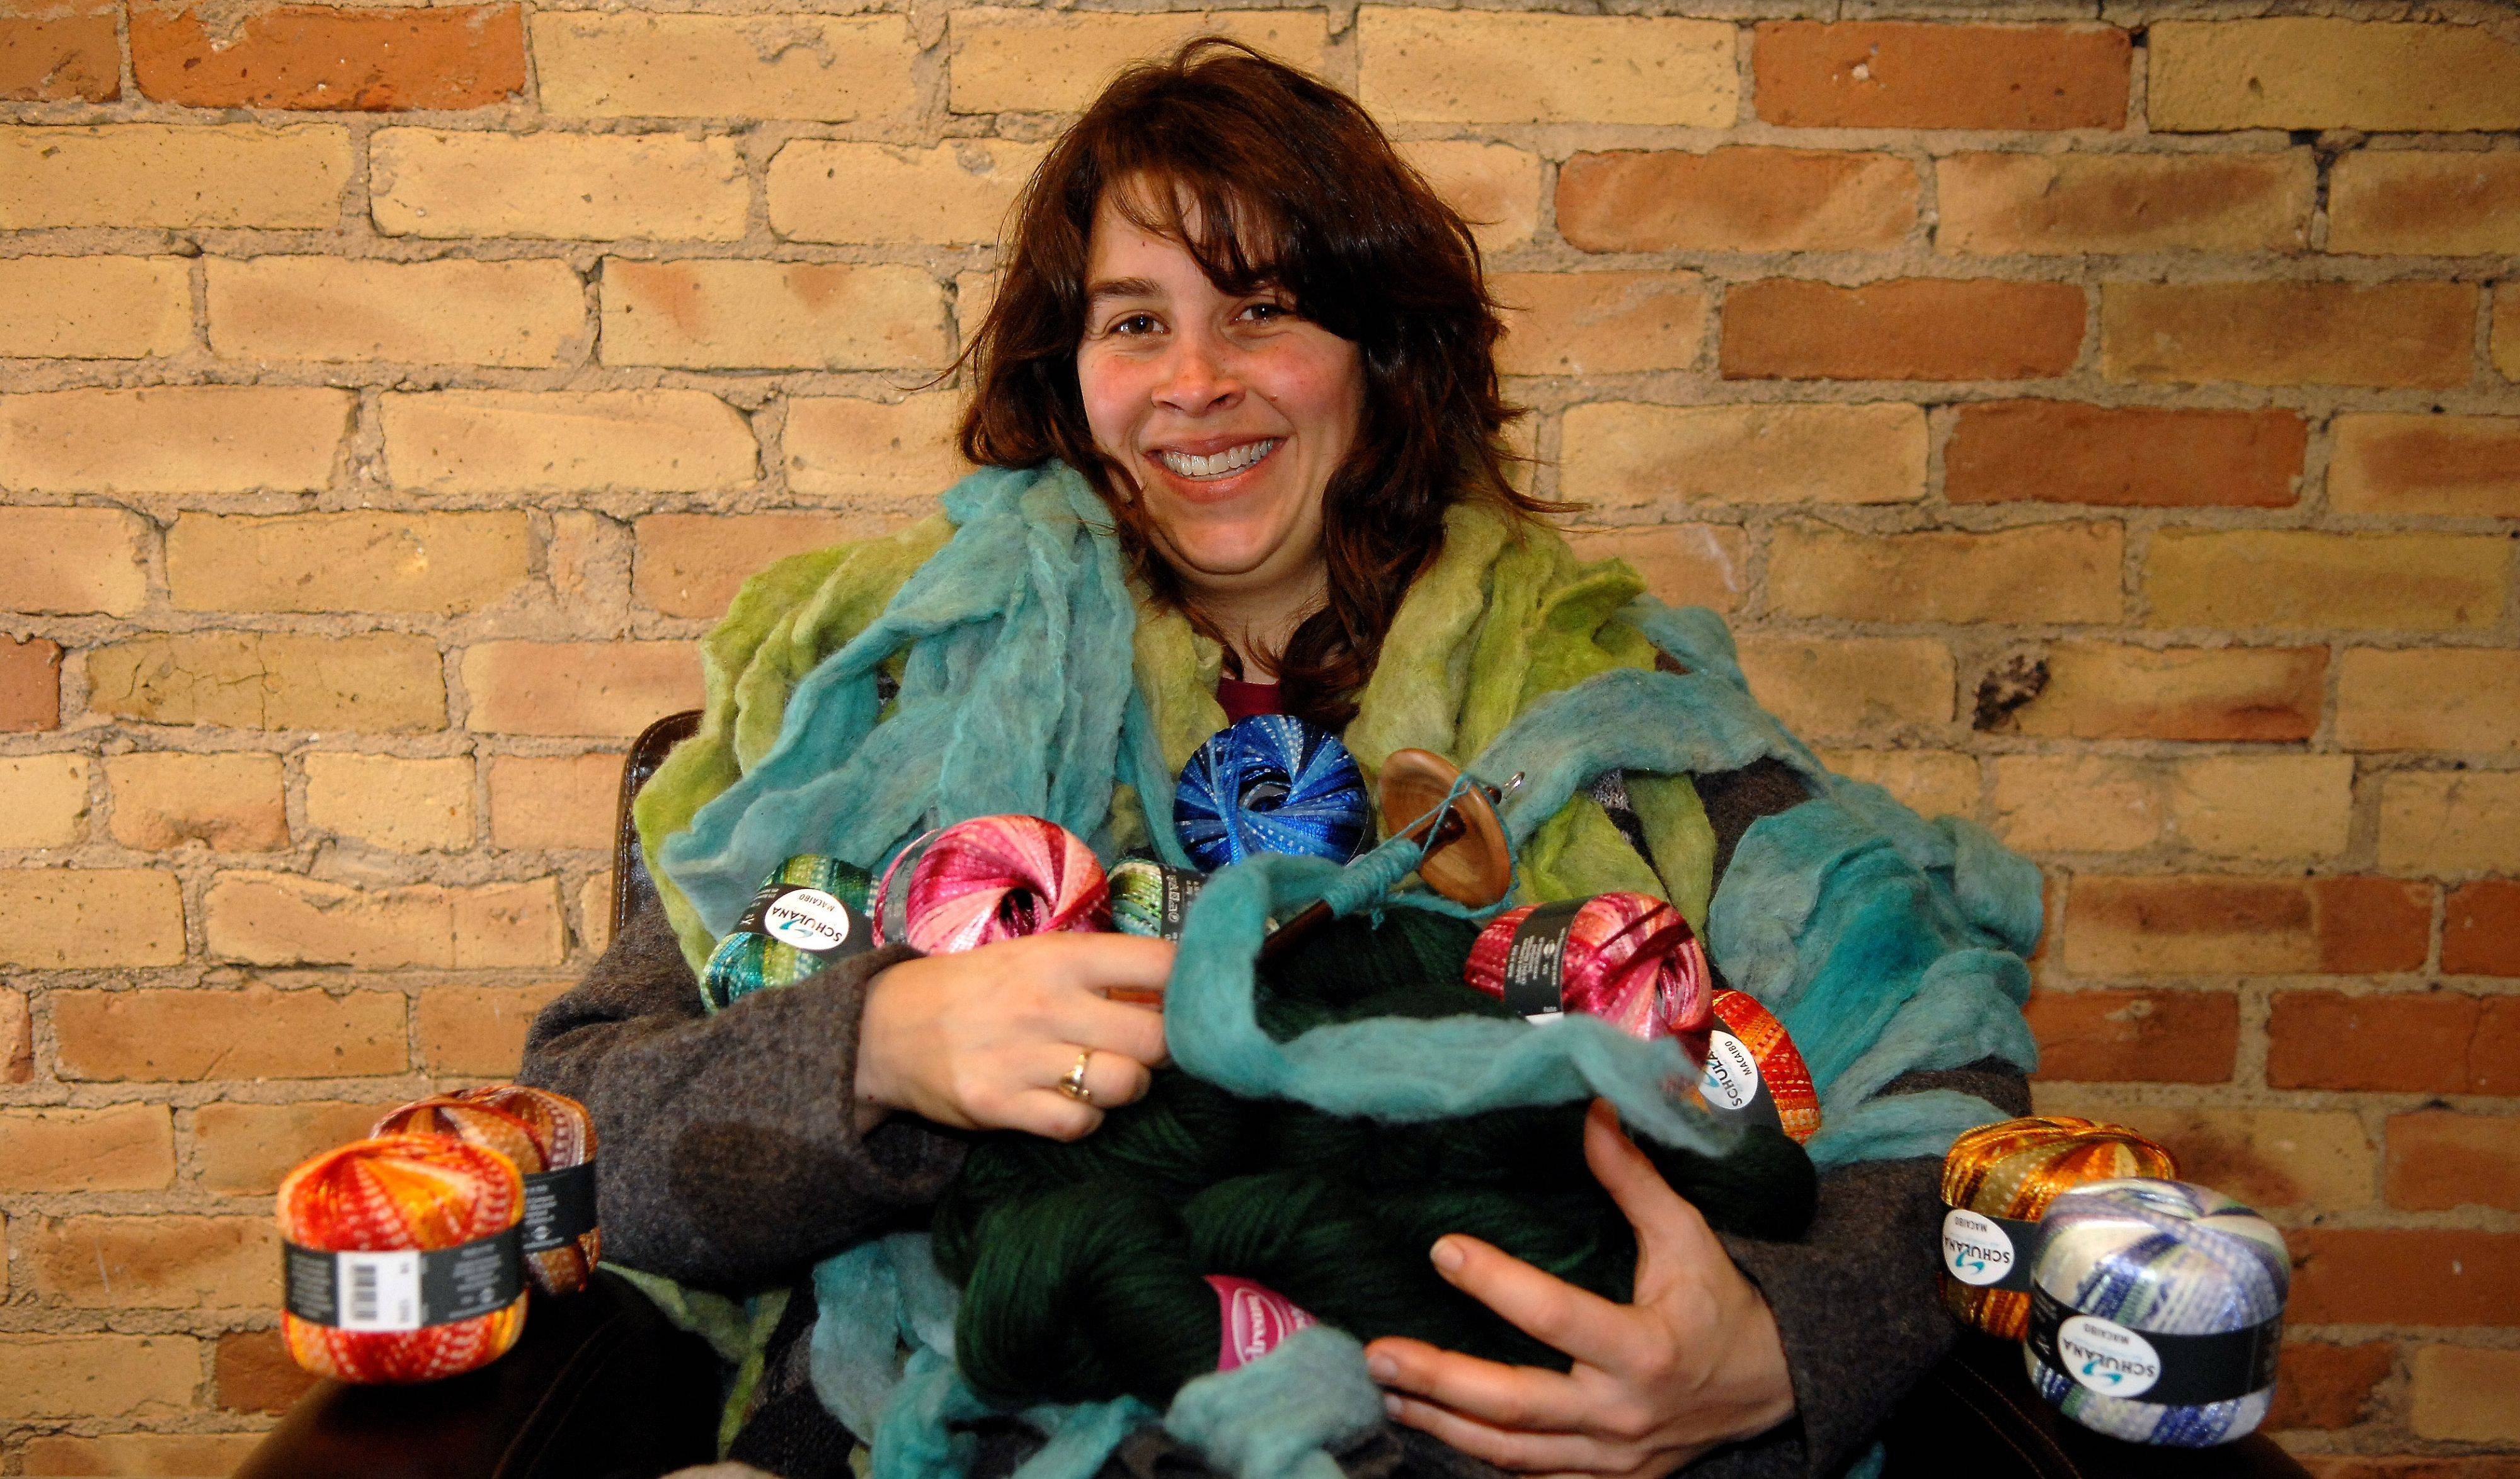 Betsy Kuhn has been doing fiber art for a long time, more recently getting into spinning and dyeing her own yarn. She and her husband will open Elgin Knit Works at 17 N. Grove Ave. on Saturday, Feb. 11, with a grand opening planned for later in March.